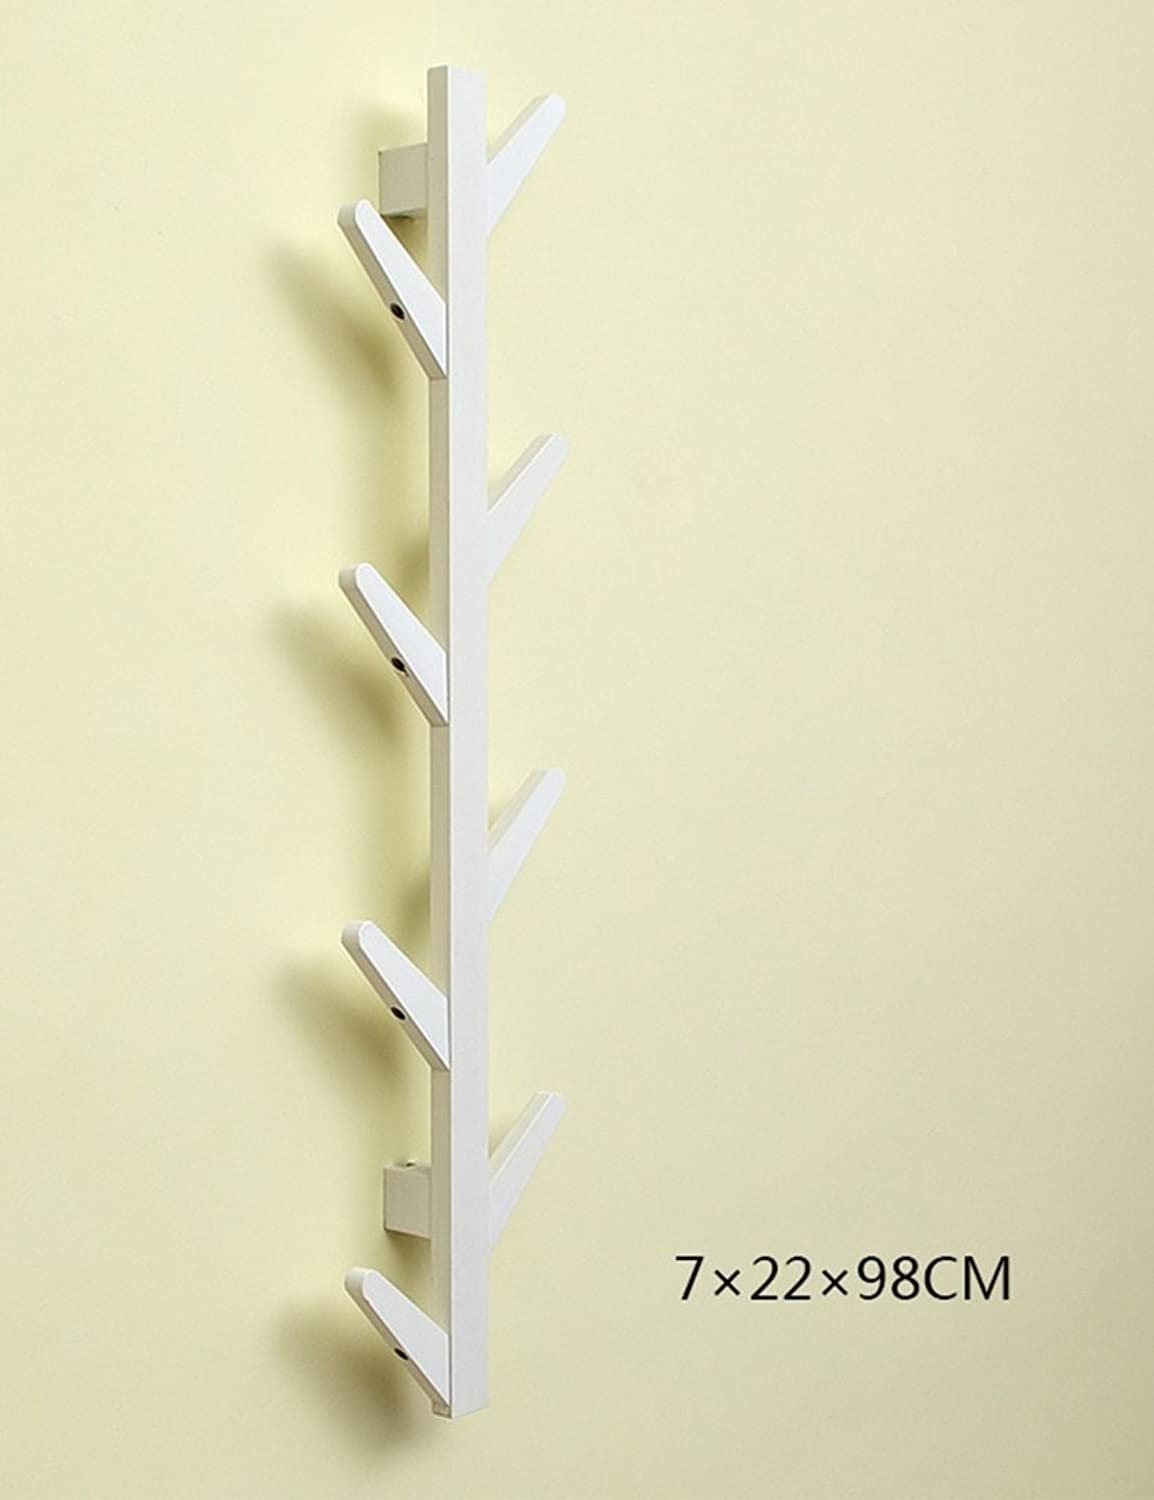 Creative Wall Entrance Solid Wood Coat Rack Bedroom Wall Hangers Living Room Simple Wall Hanging Clothes Hanger (color   White, Size   8 Hook)